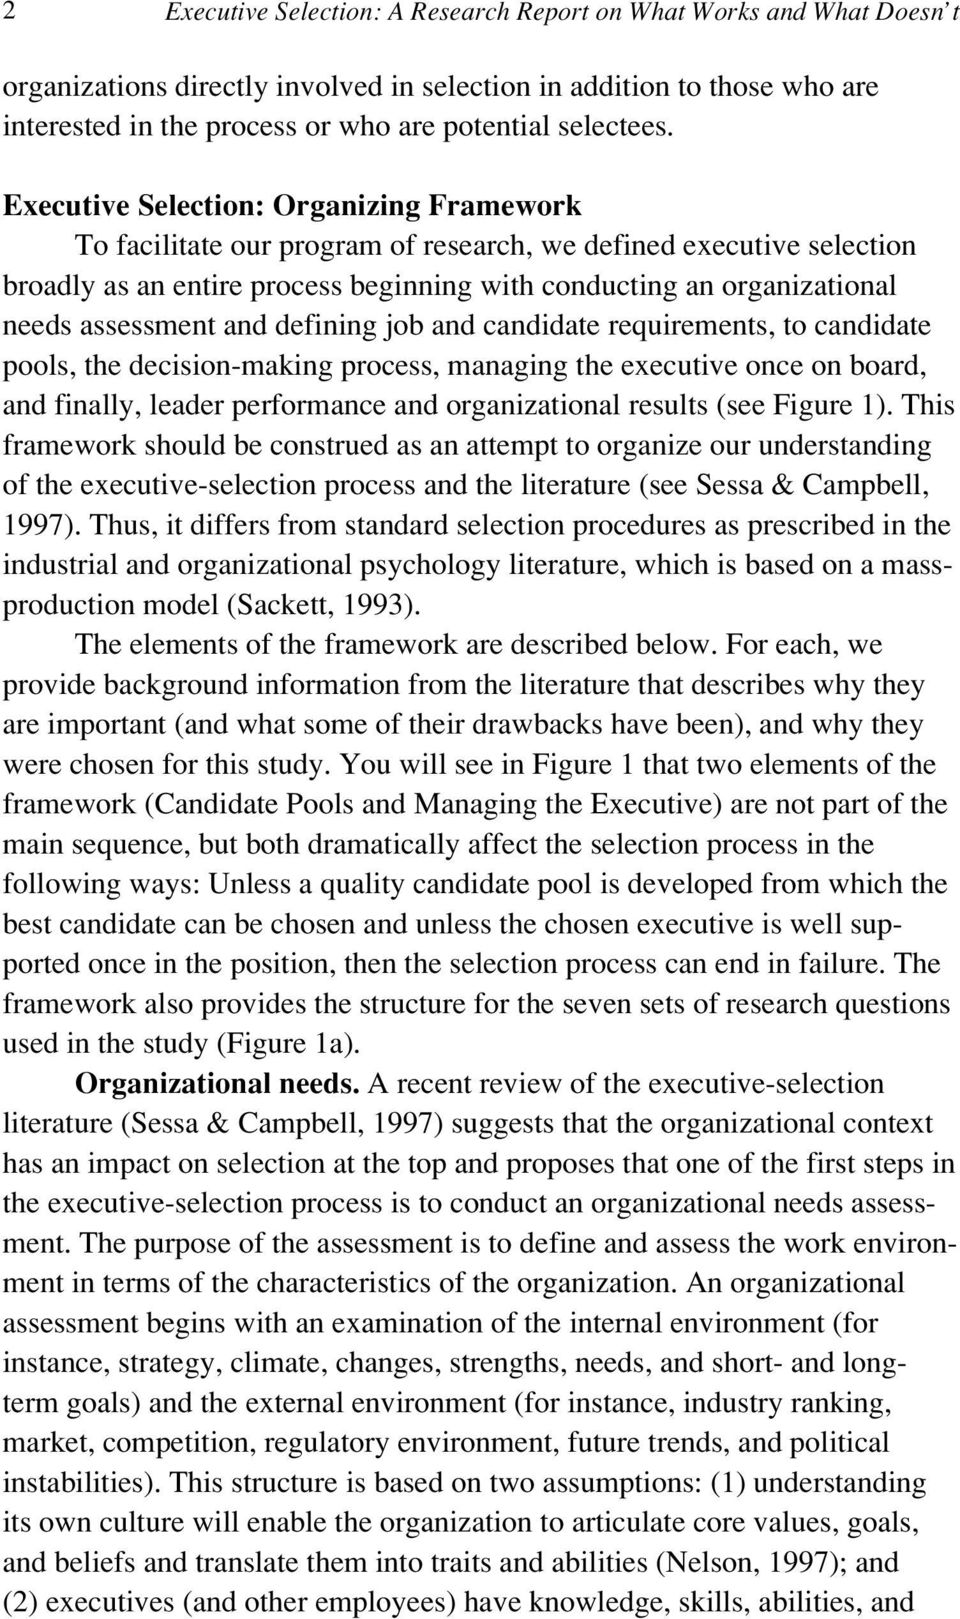 Executive Selection: Organizing Framework To facilitate our program of research, we defined executive selection broadly as an entire process beginning with conducting an organizational needs